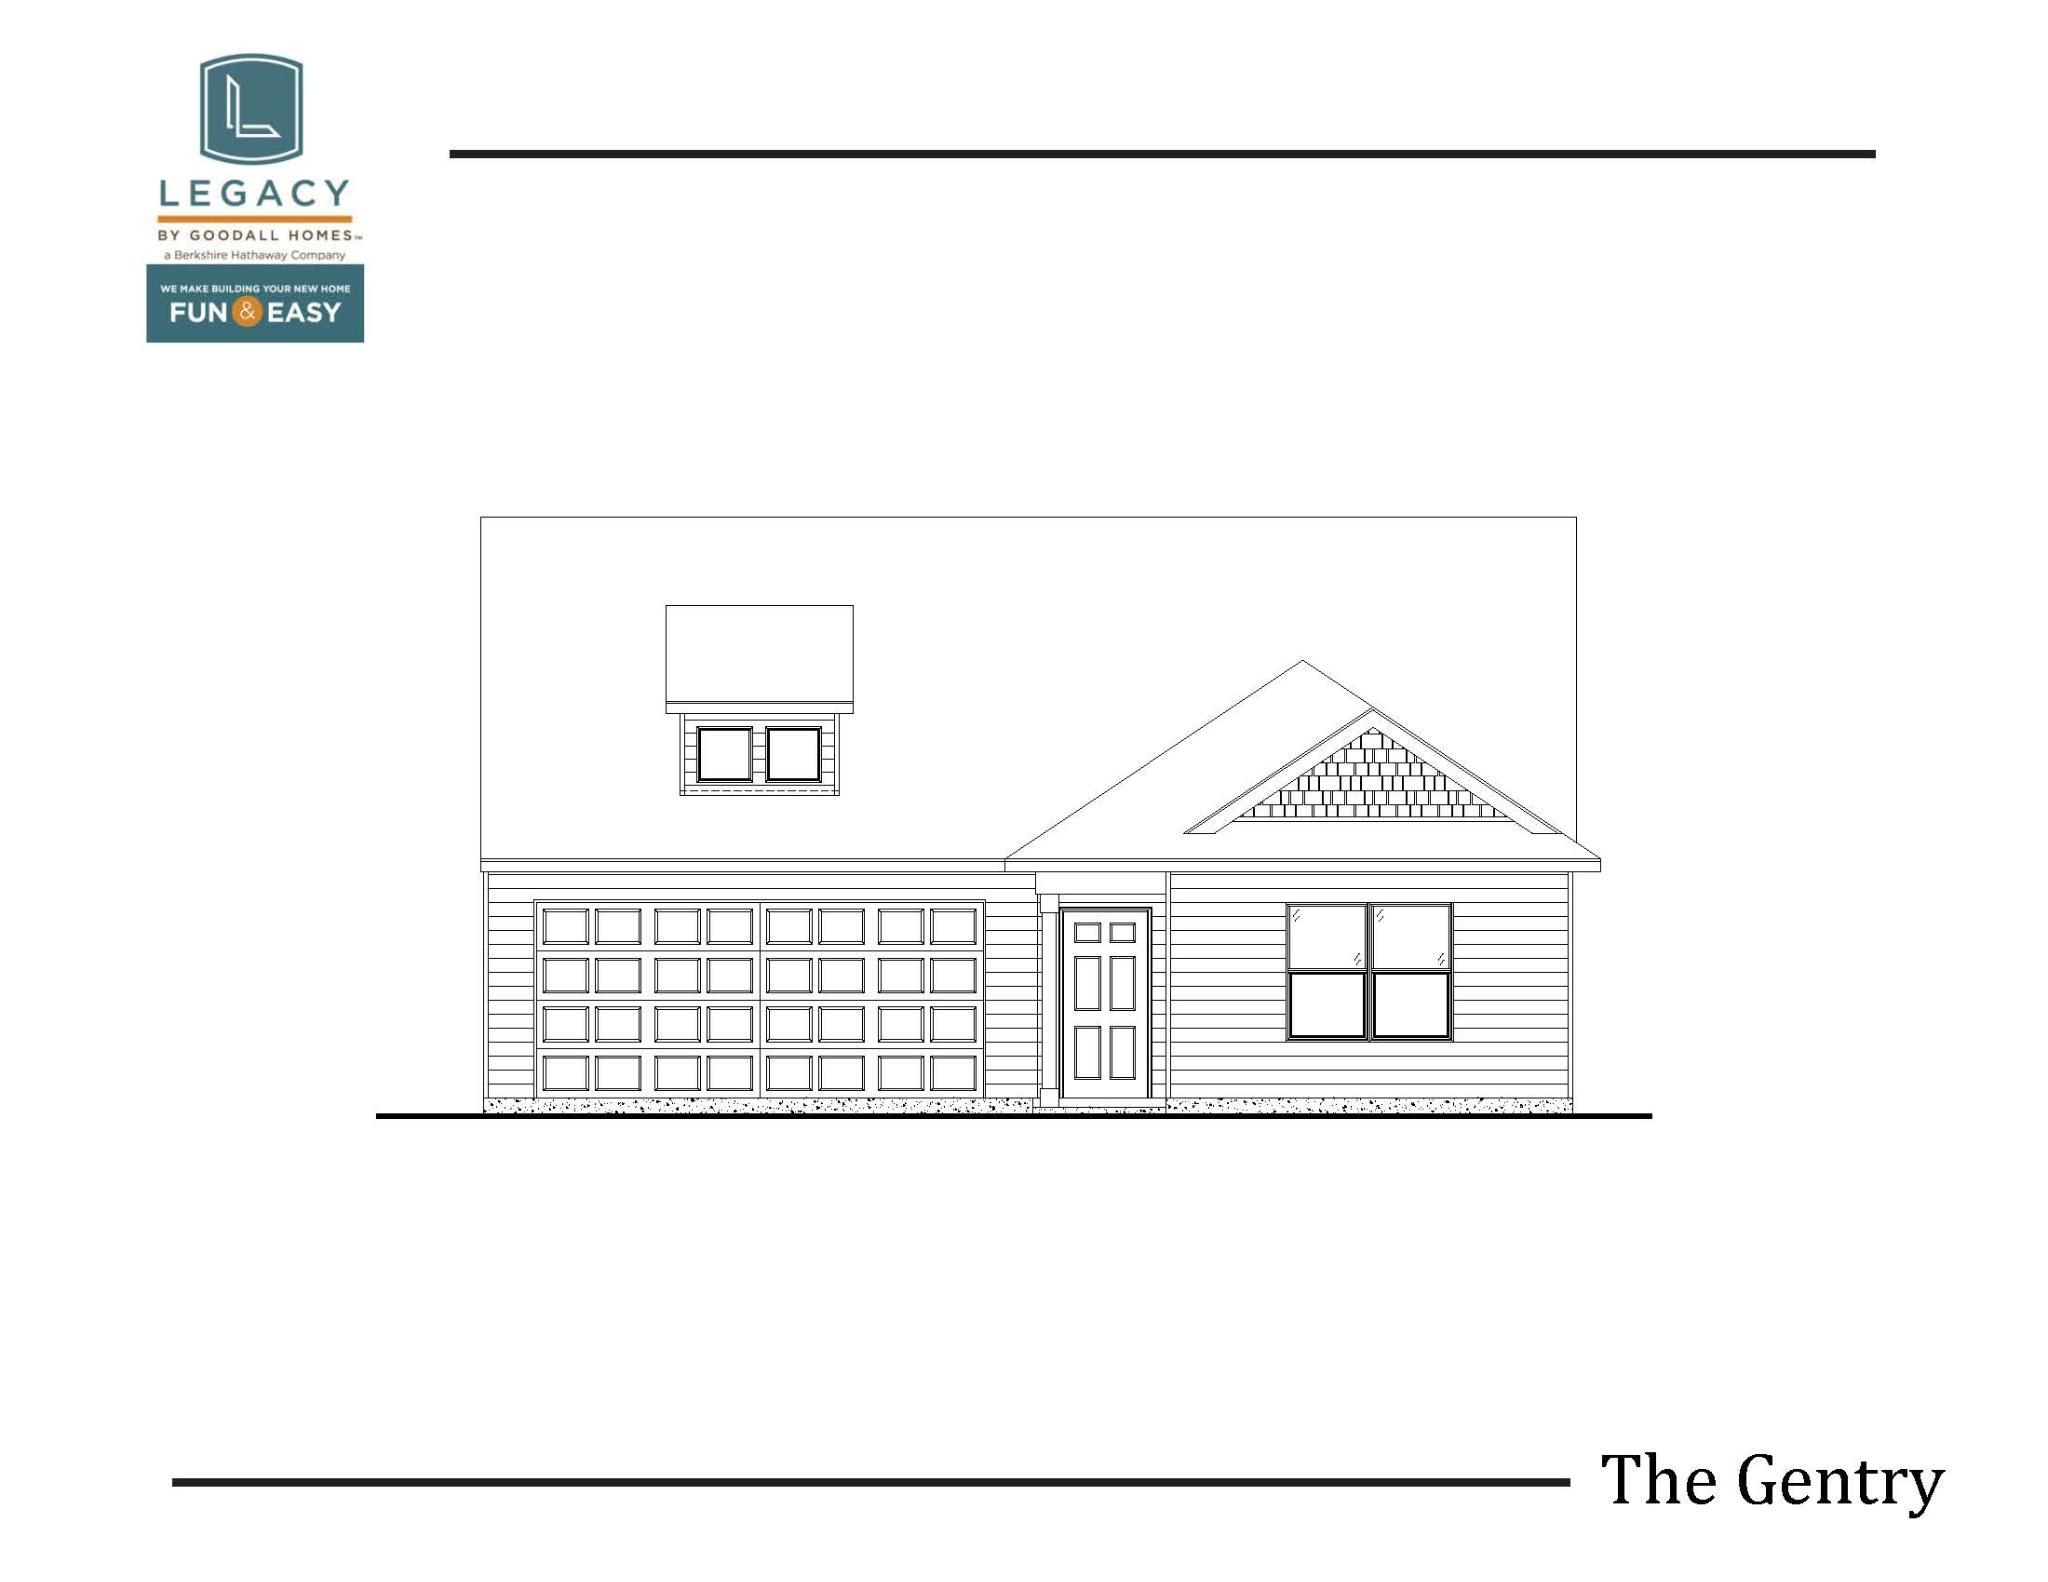 Exterior featured in The Gentry - Legacy By Goodall Homes in Owensboro, KY